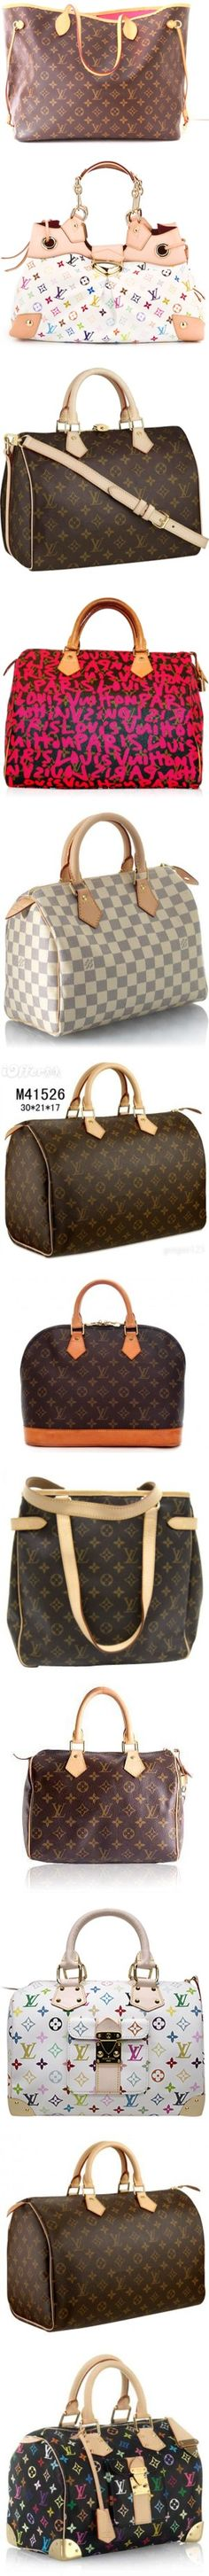 """""""Louis Vuitton 1"""" by southerngirly-9072 ❤ liked on Polyvore"""